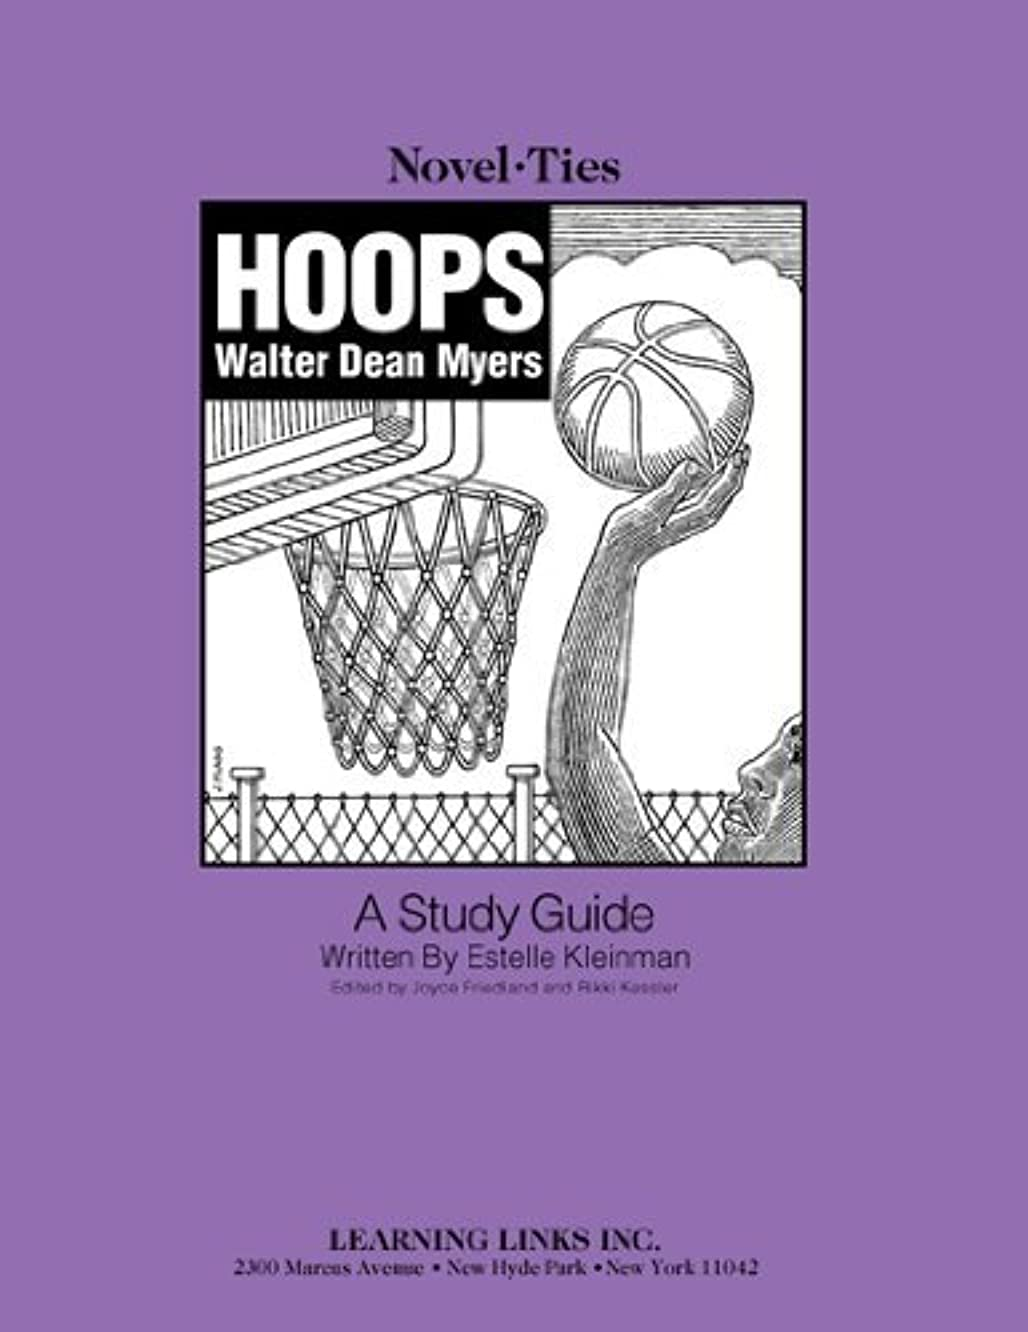 Hoops: Novel-Ties Study Guide by Walter Dean Myers (2006-01-01) Paperback